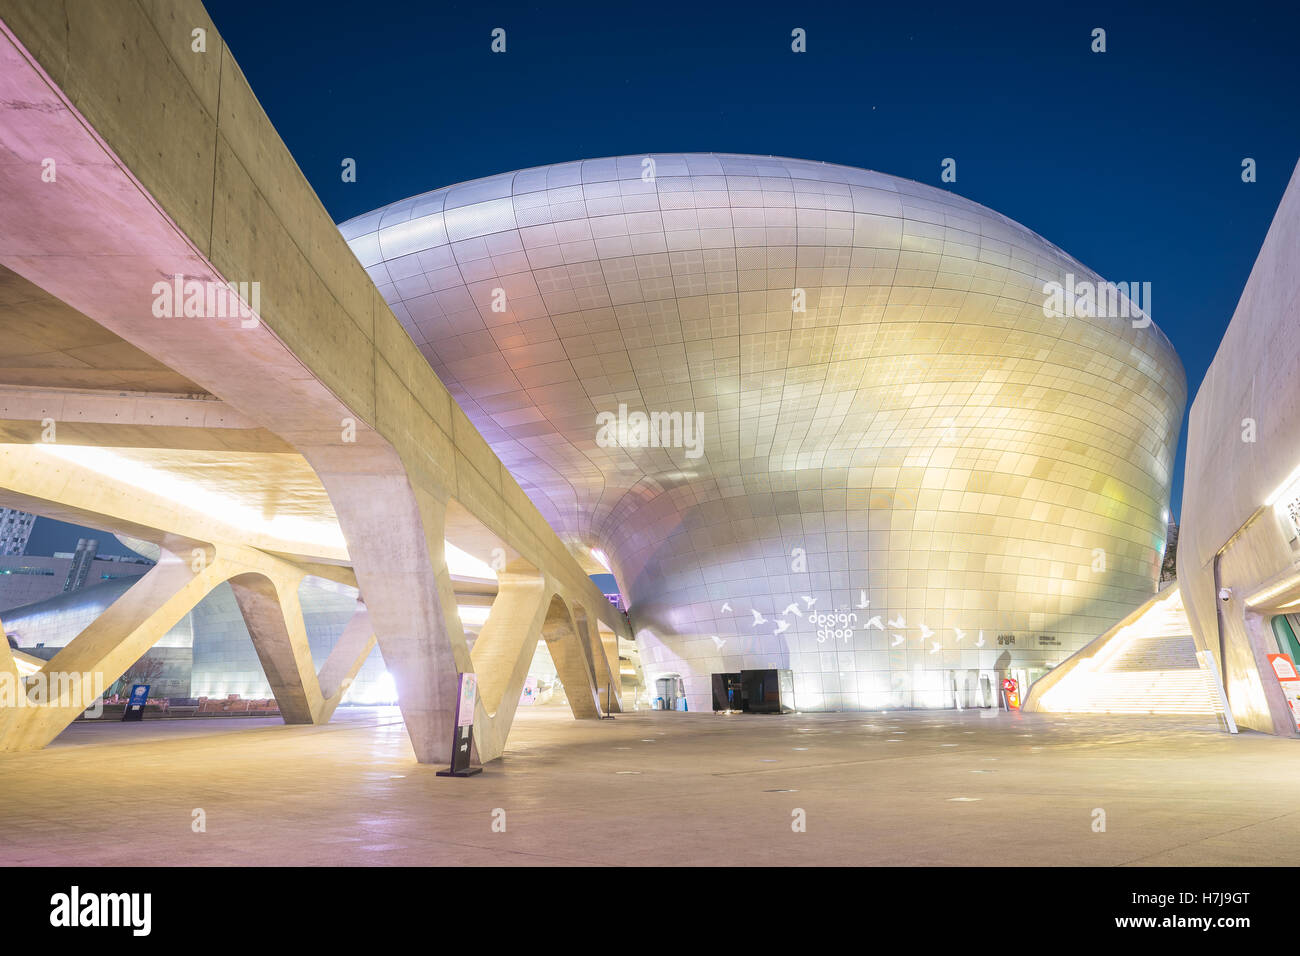 Seoul, South Korea- December 7, 2015: The Dongdaemun Design Plaza also called the DDP is a major urban development - Stock Image